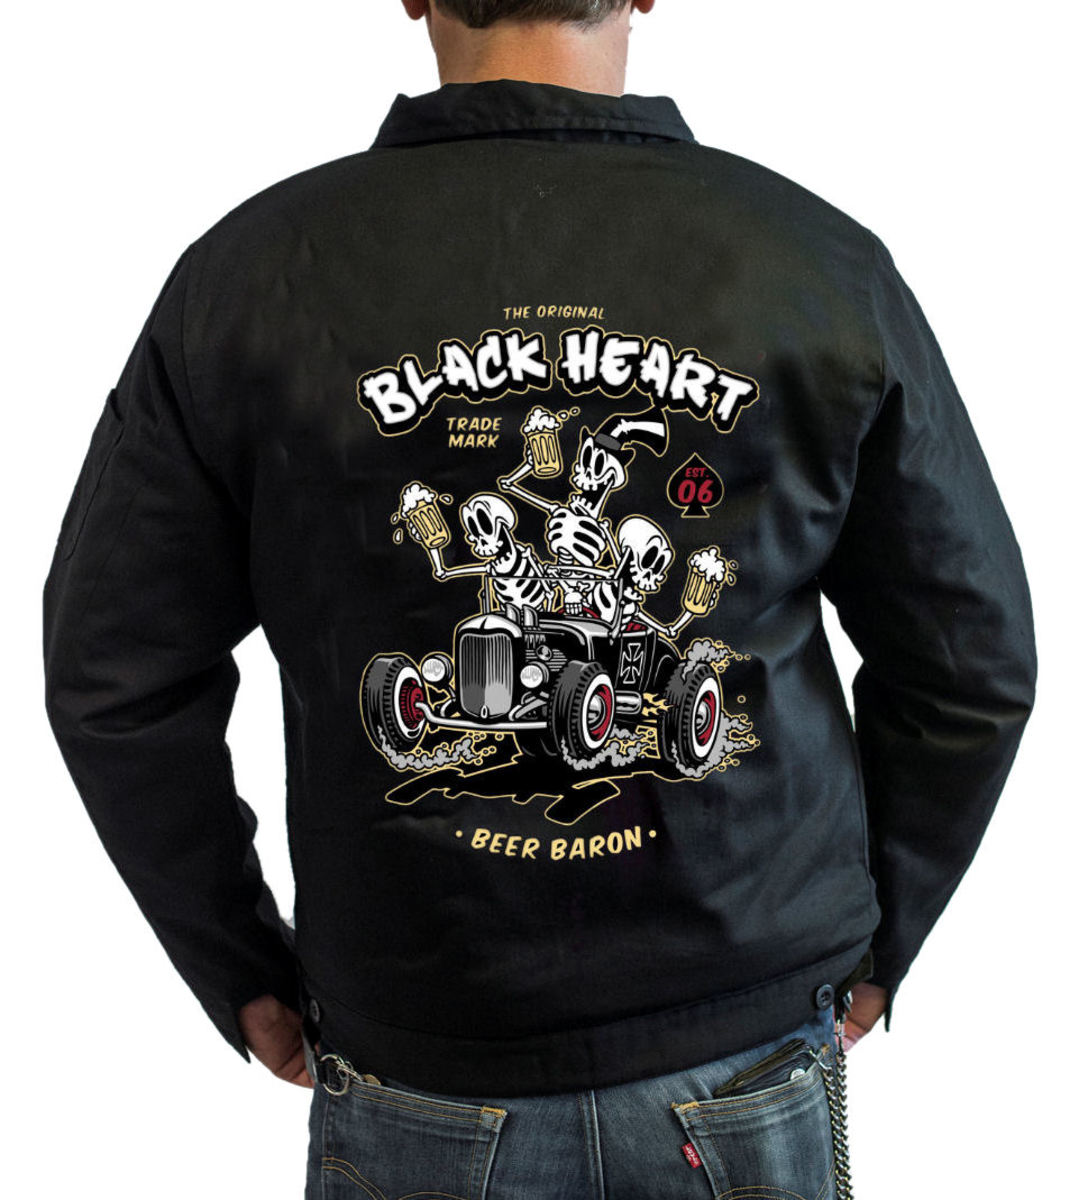 bunda pánská BLACK HEART - BEER BARON - BLACK - 006-0010-BLK